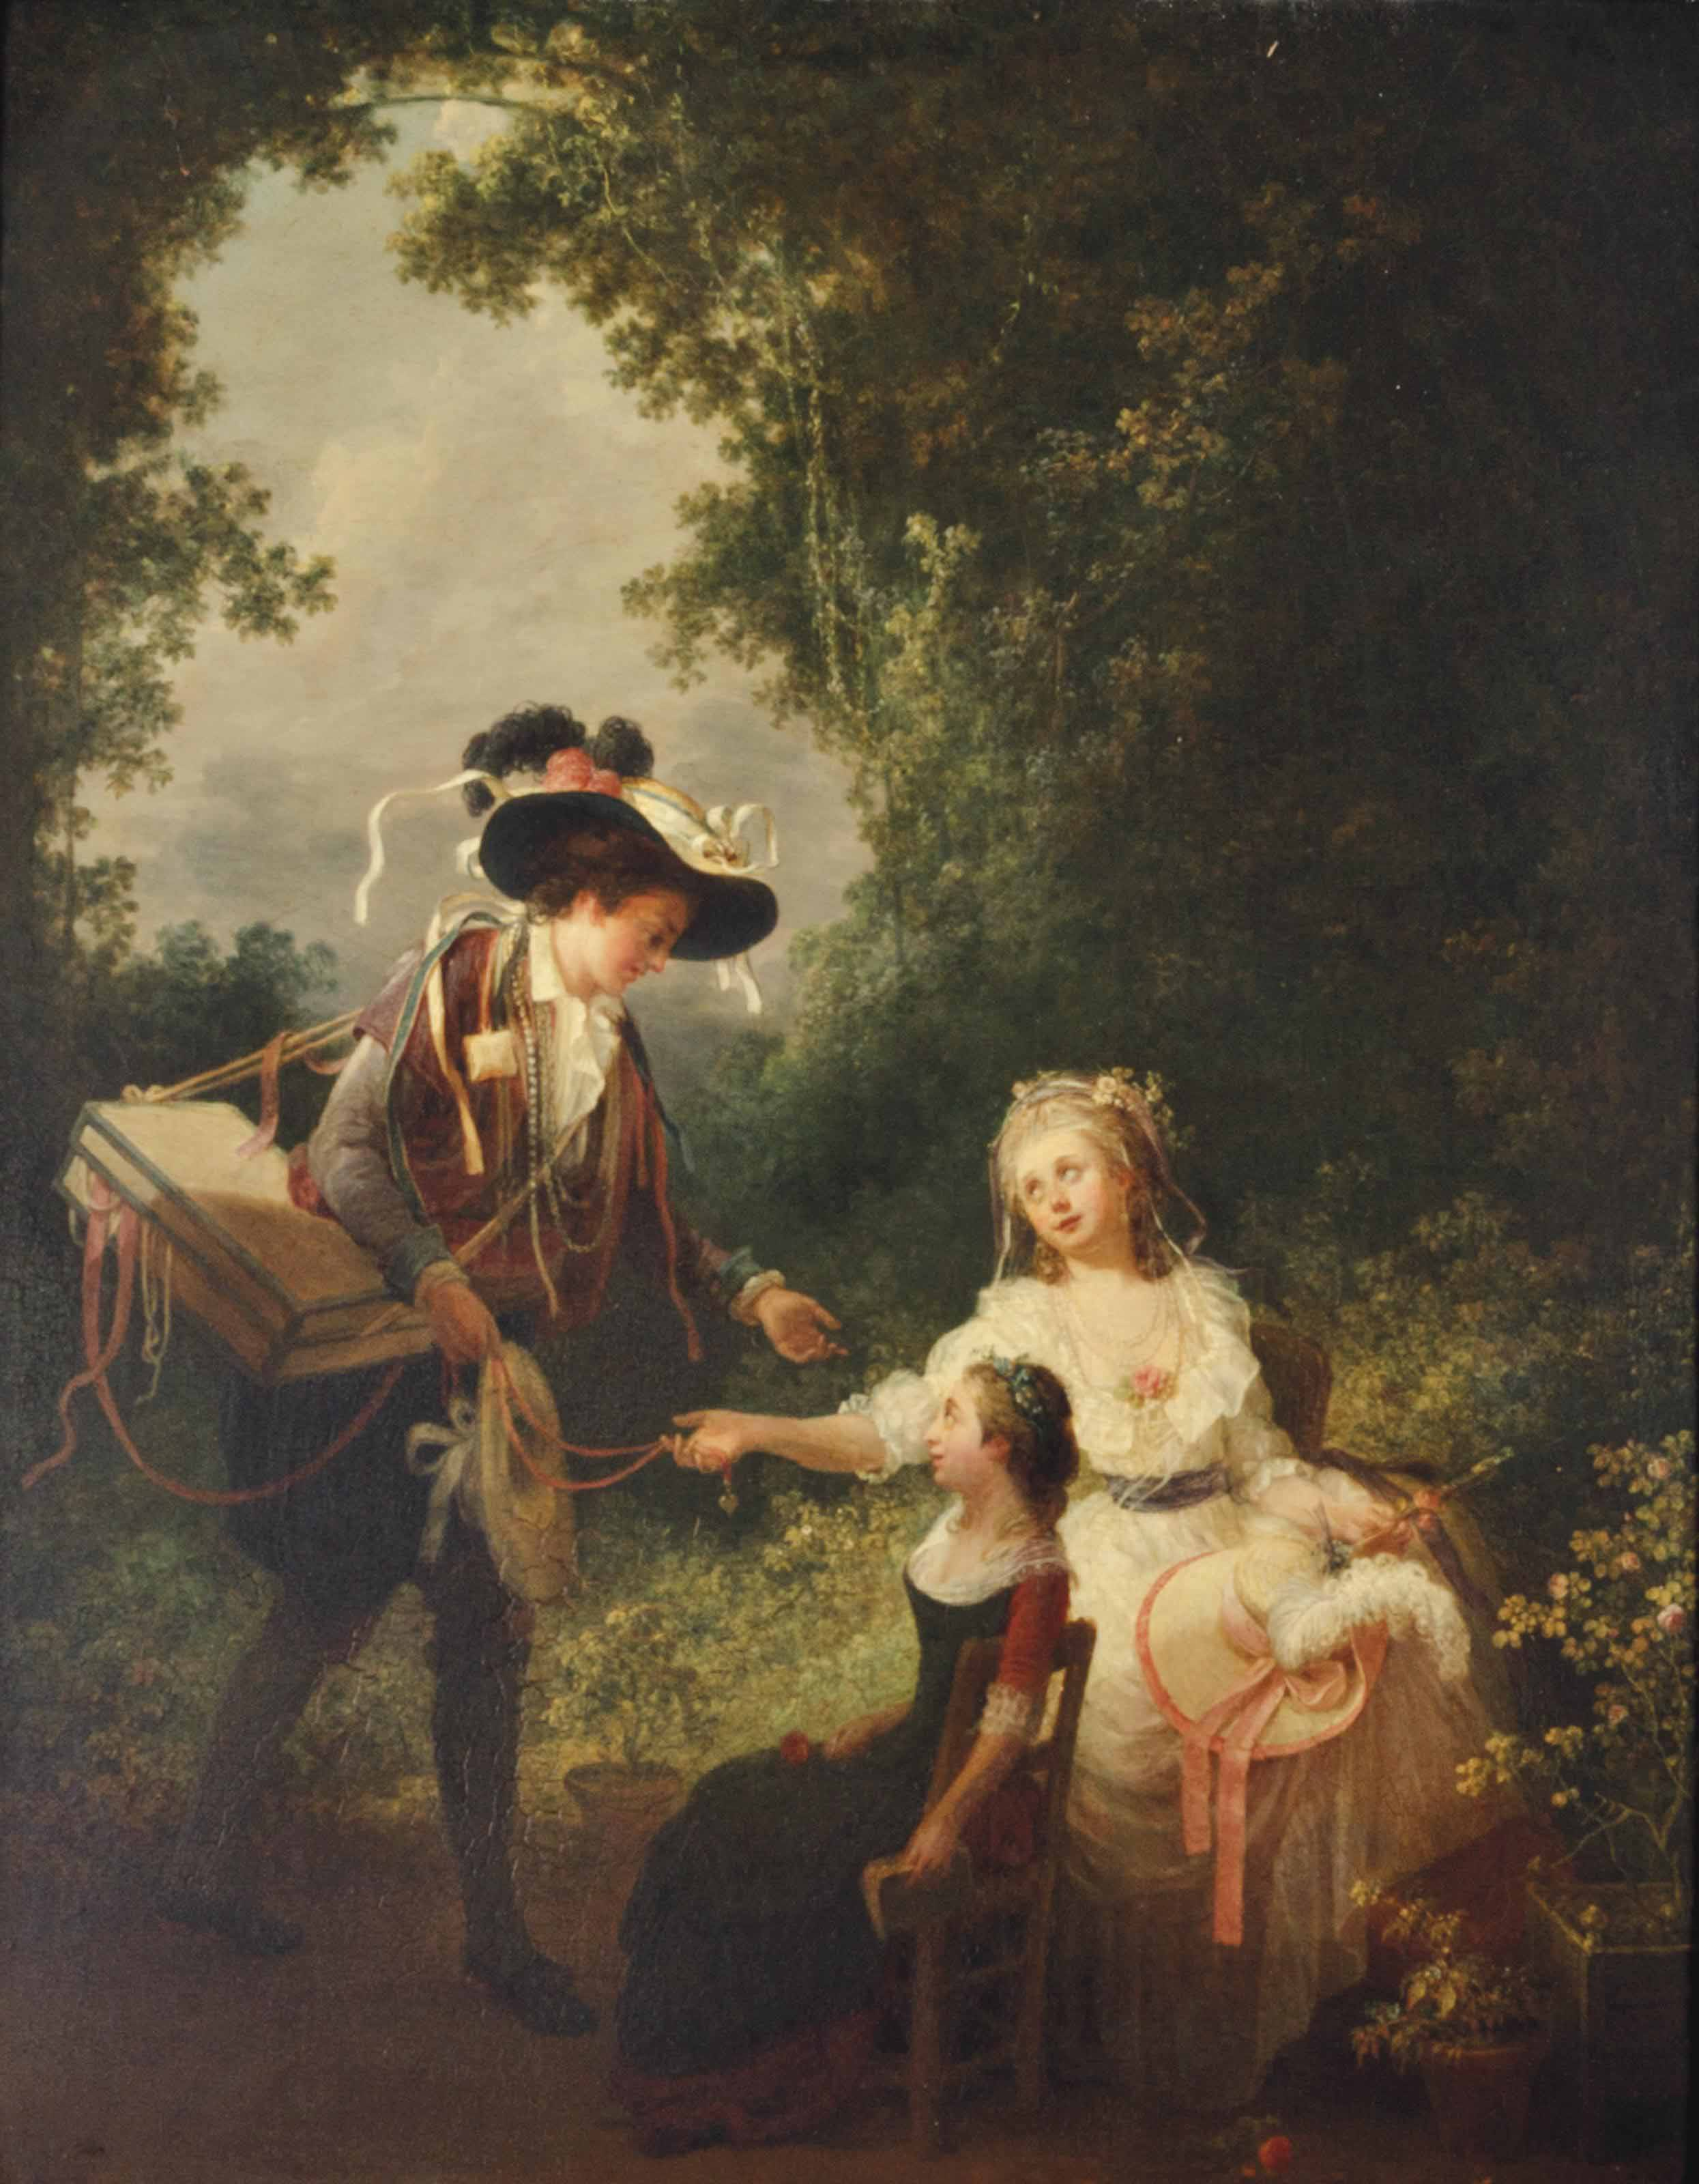 Attributed to Jean-Frederic Sc